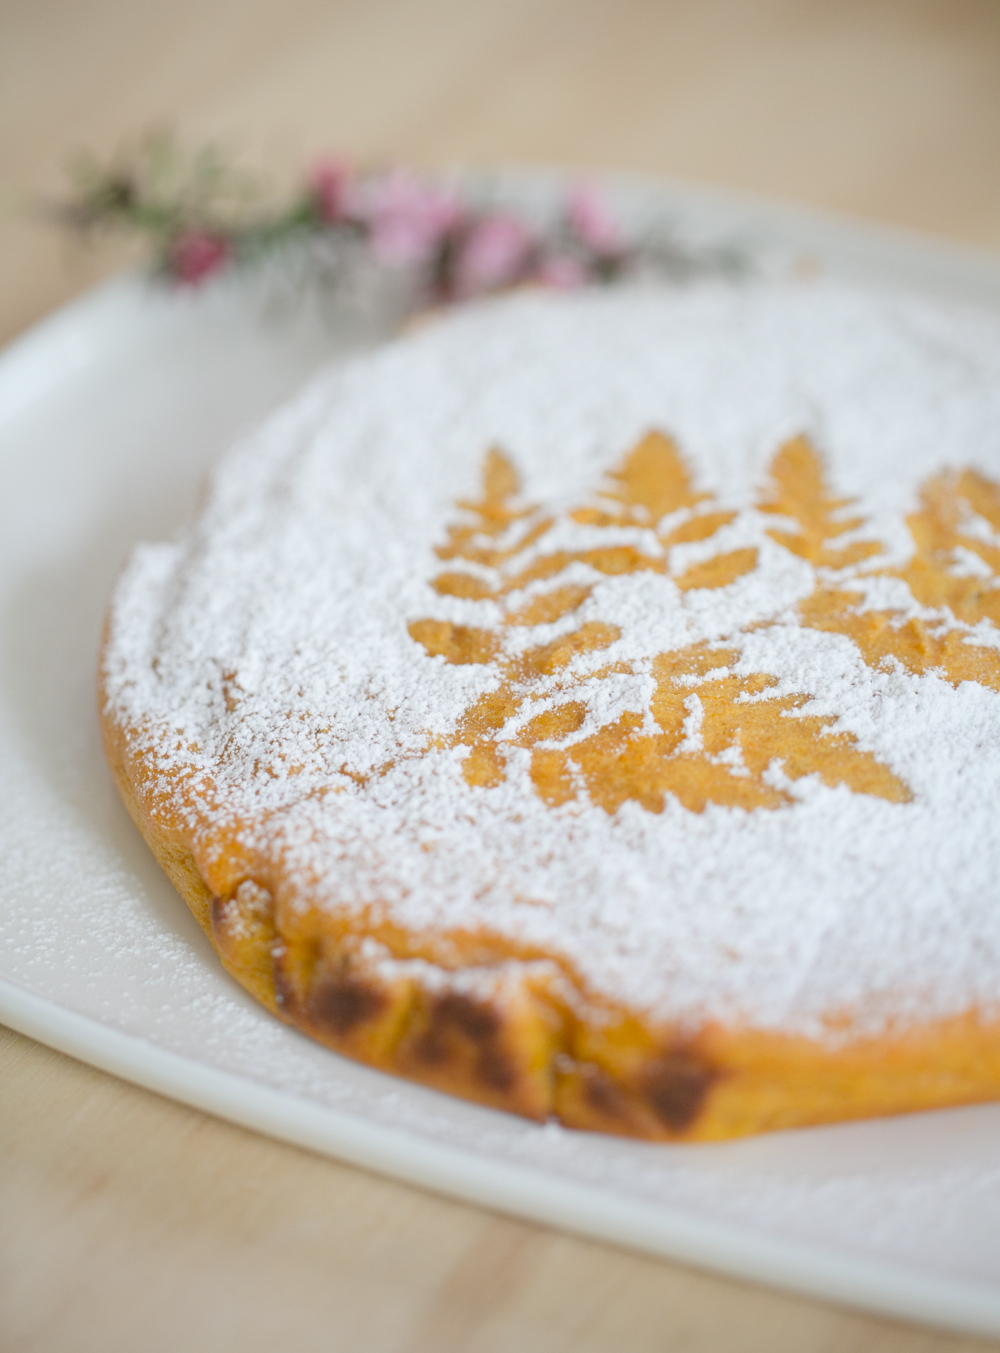 Blanccoco_Photographe_Kumara_cake_rhum_new_zealand-21